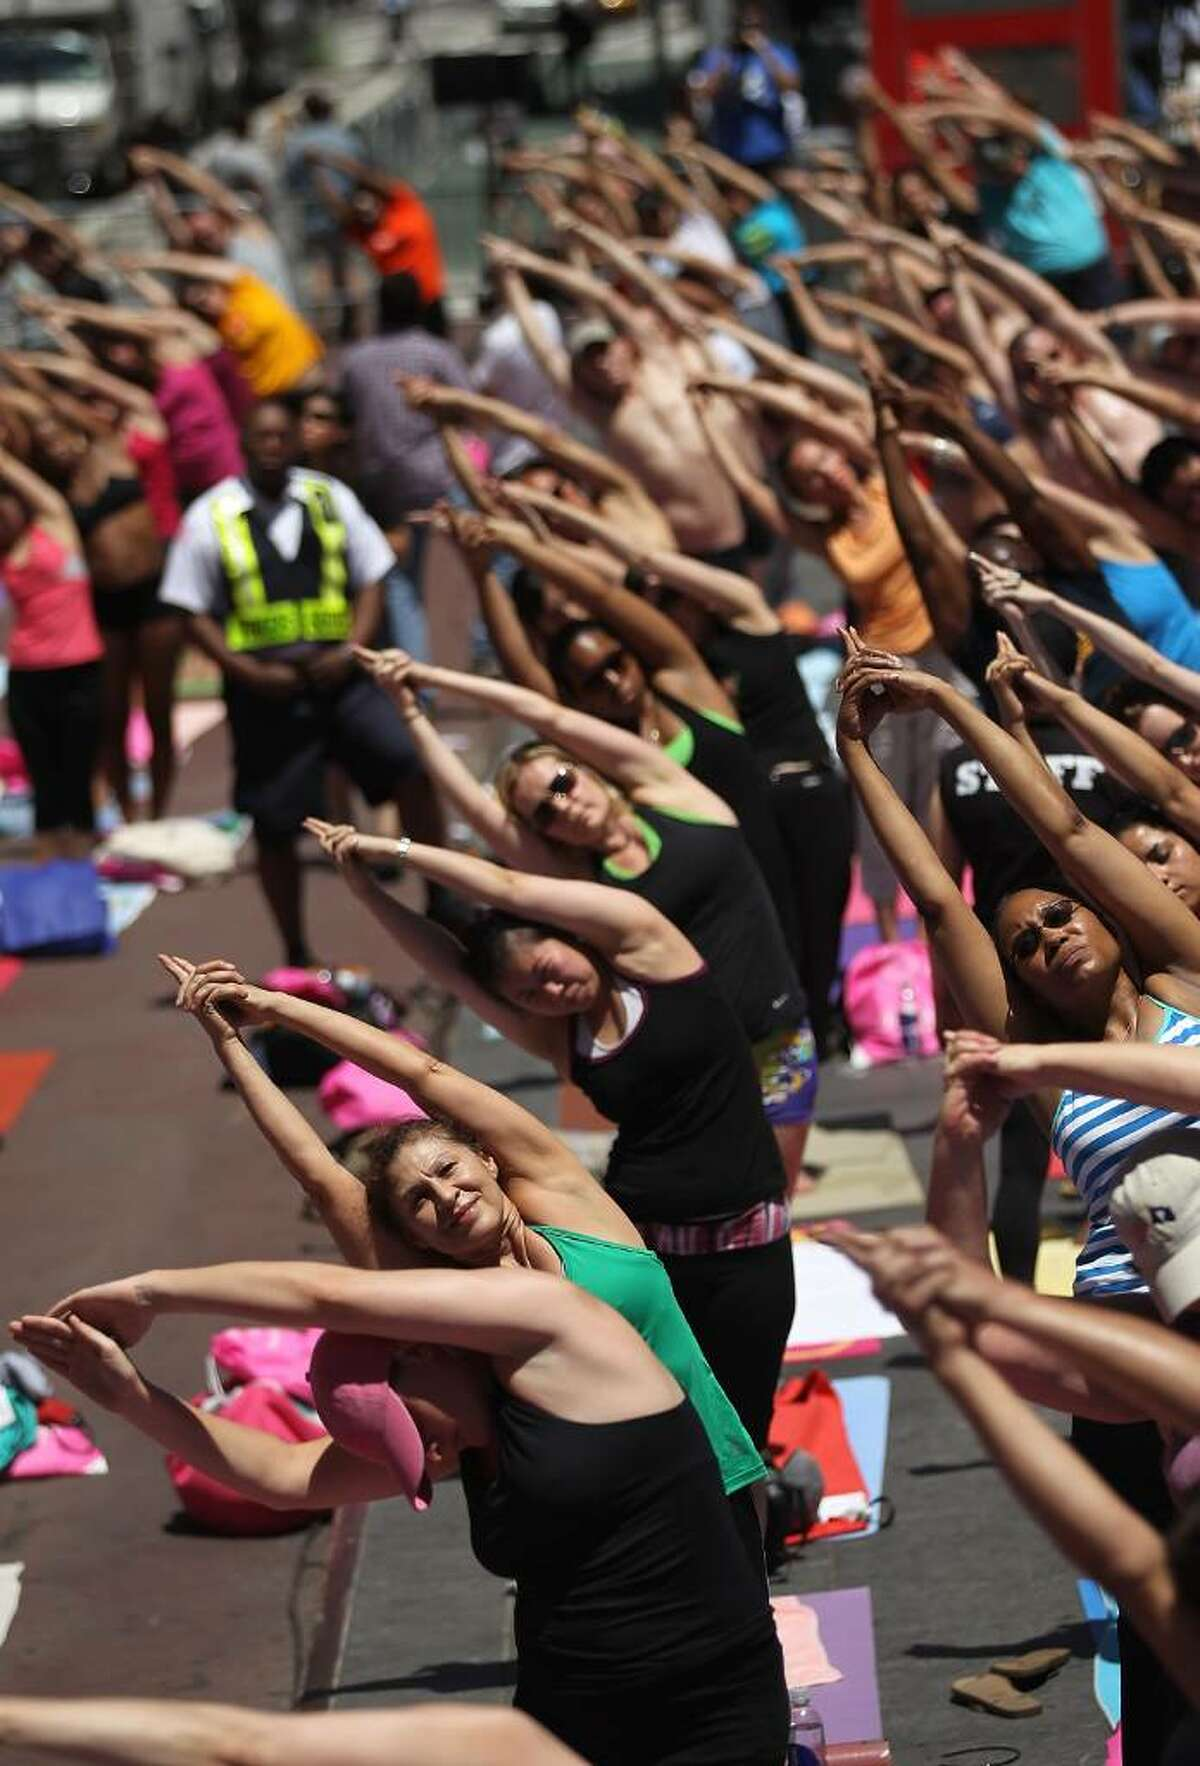 NEW YORK - JUNE 21: Yoga enthusiasts participate in the free annual 'Summer Solstice in Times Square Yoga-thon' June 21, 2010 in New York City. The summer solstice is the first official day of summer and the longest day of the year. (Photo by Mario Tama/Getty Images)